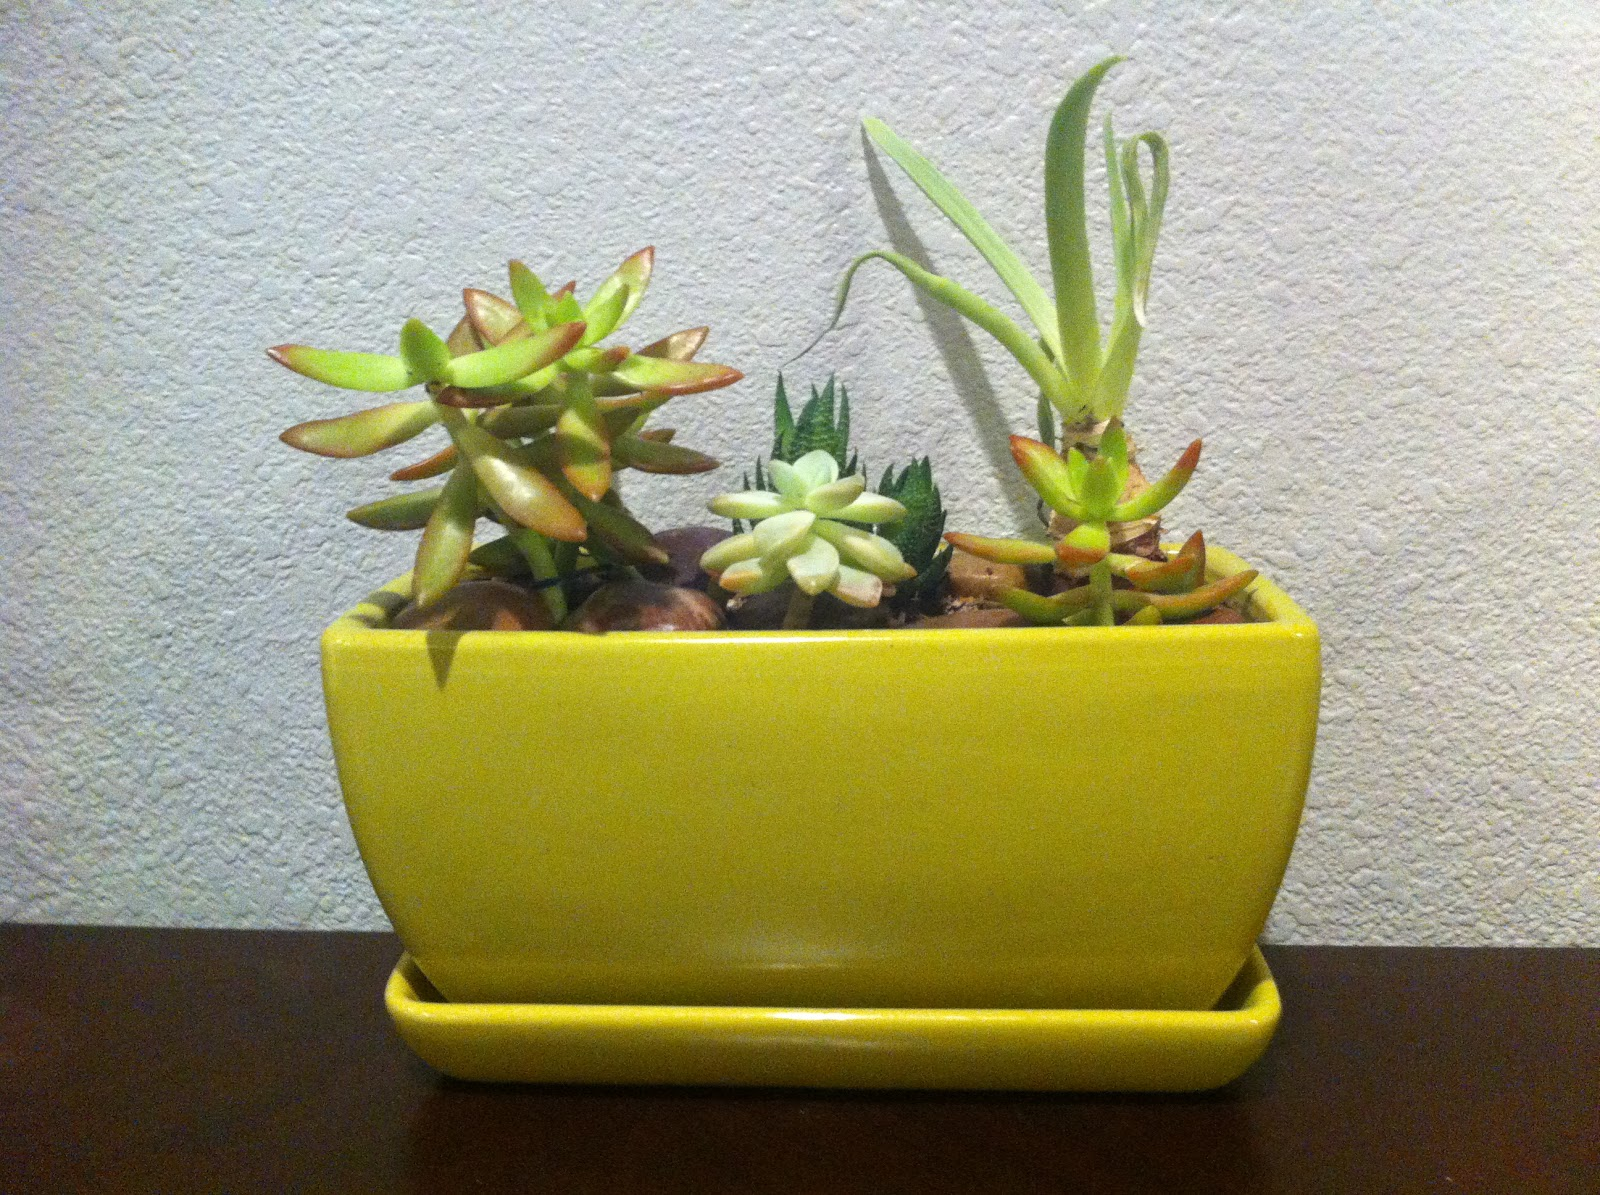 Small Succulent Plants For Sale Me My Food And My Creativity Diy Terrariums And Potted